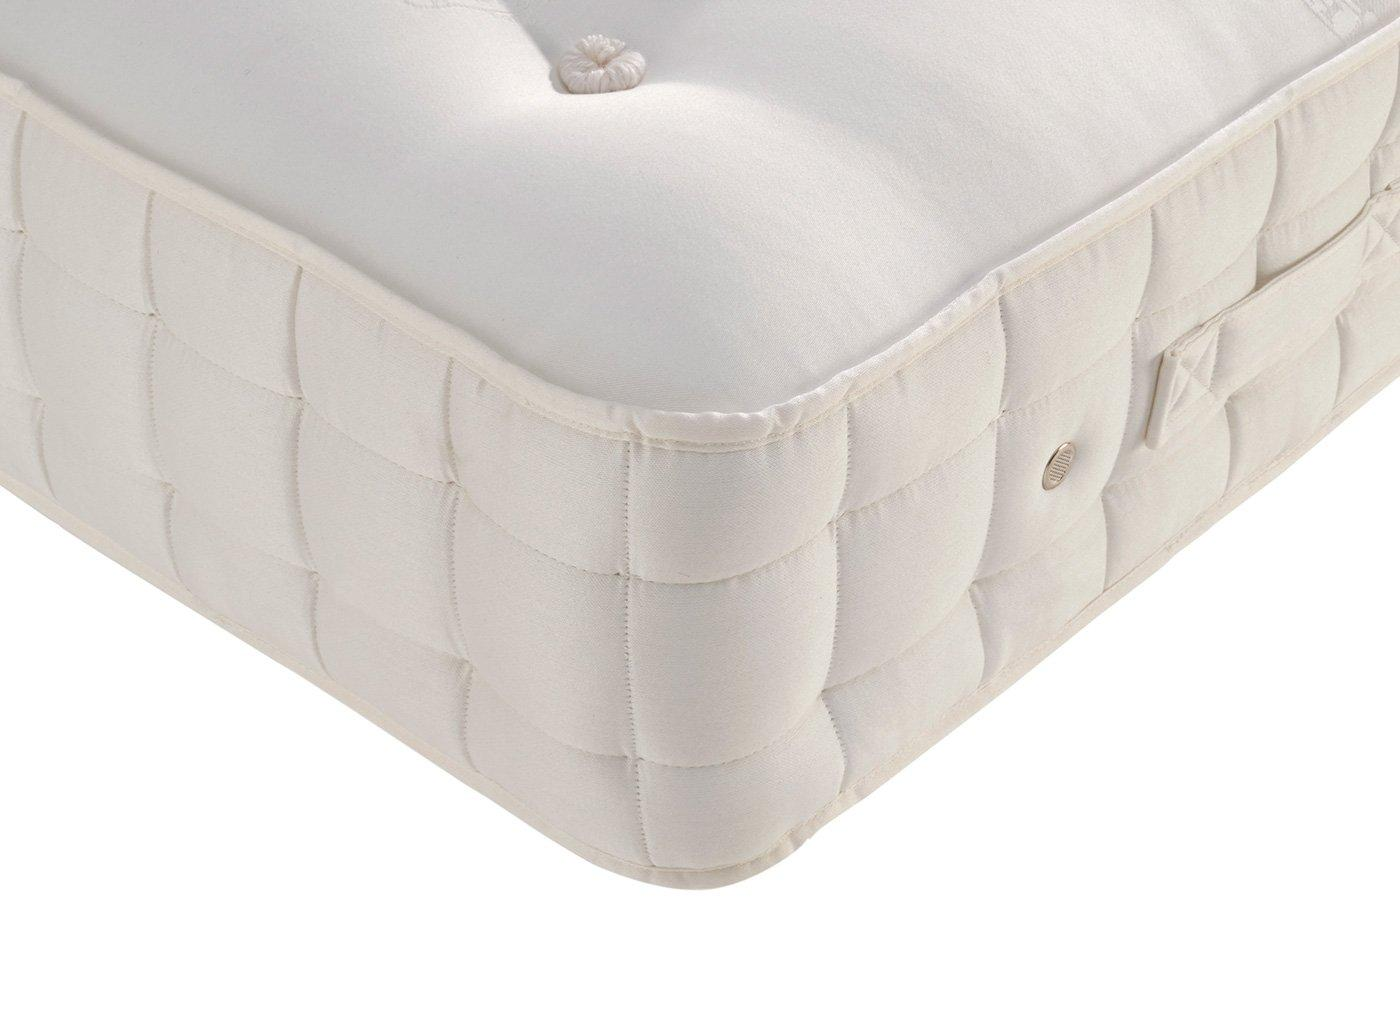 Hypnos Walters Mattress 5'0 King